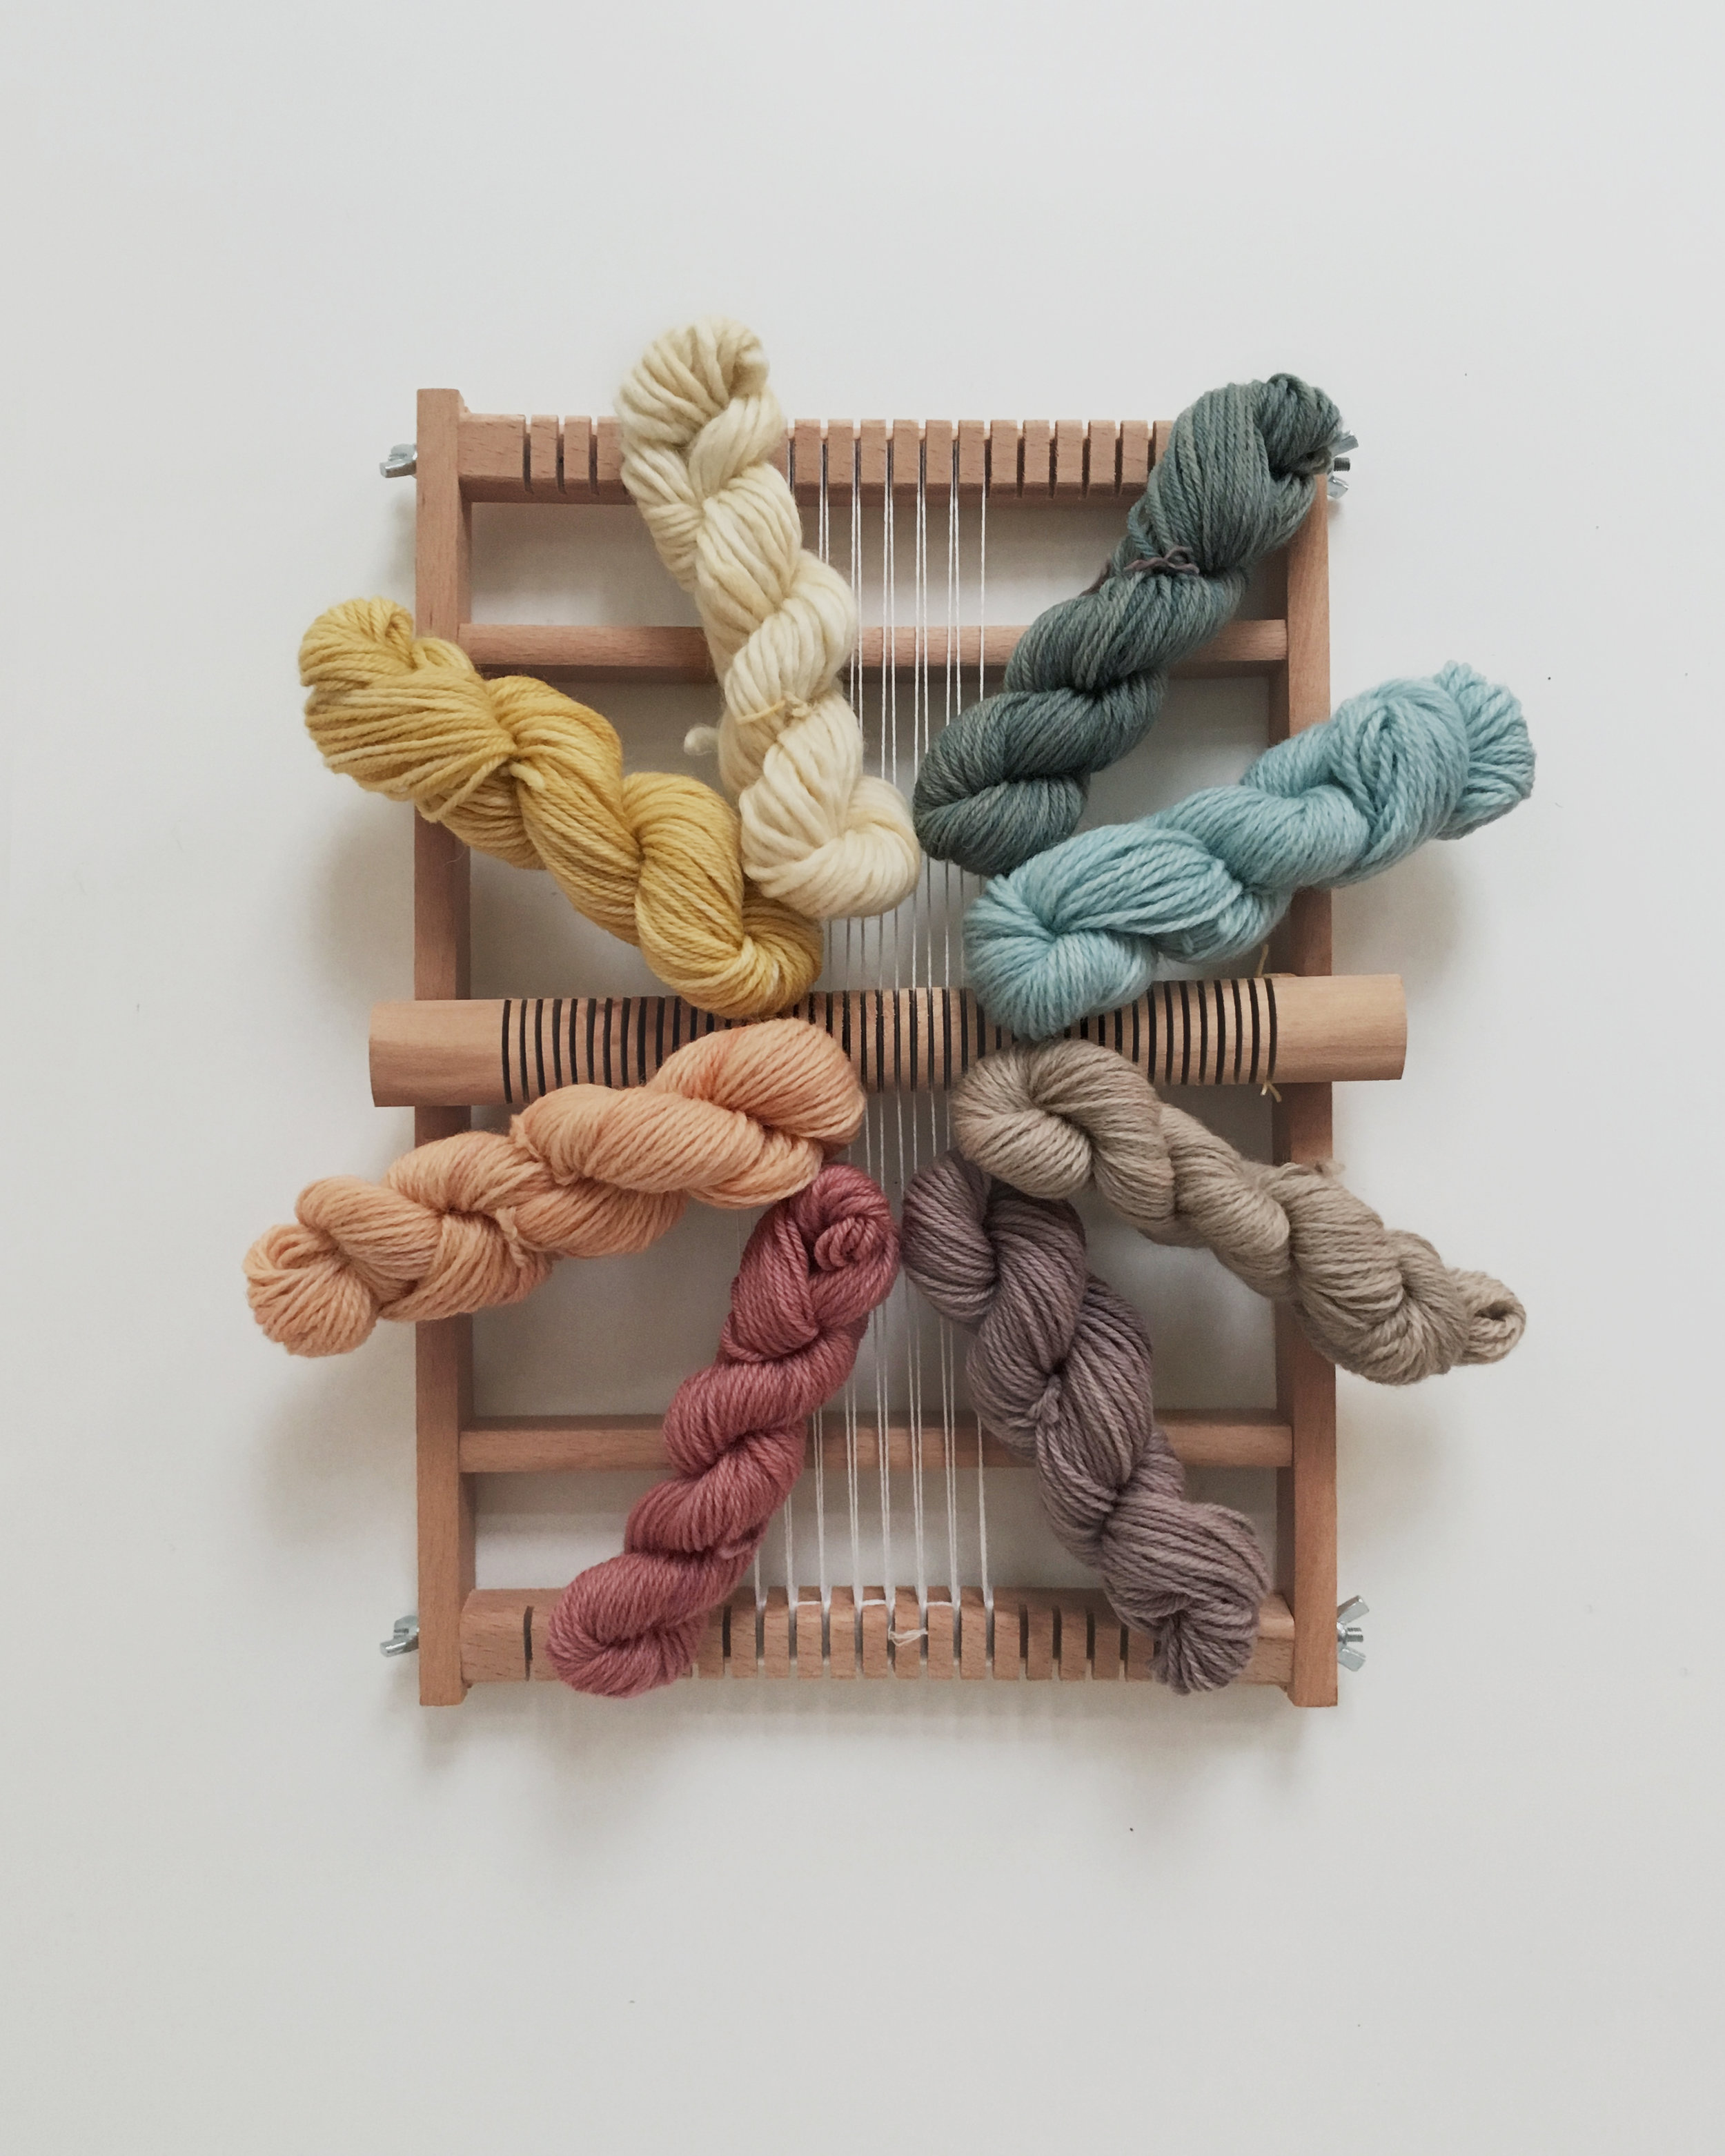 Loom and yarn kits for beginner weavers. Handcrafted in Germany. All yarns dyed with local plants.